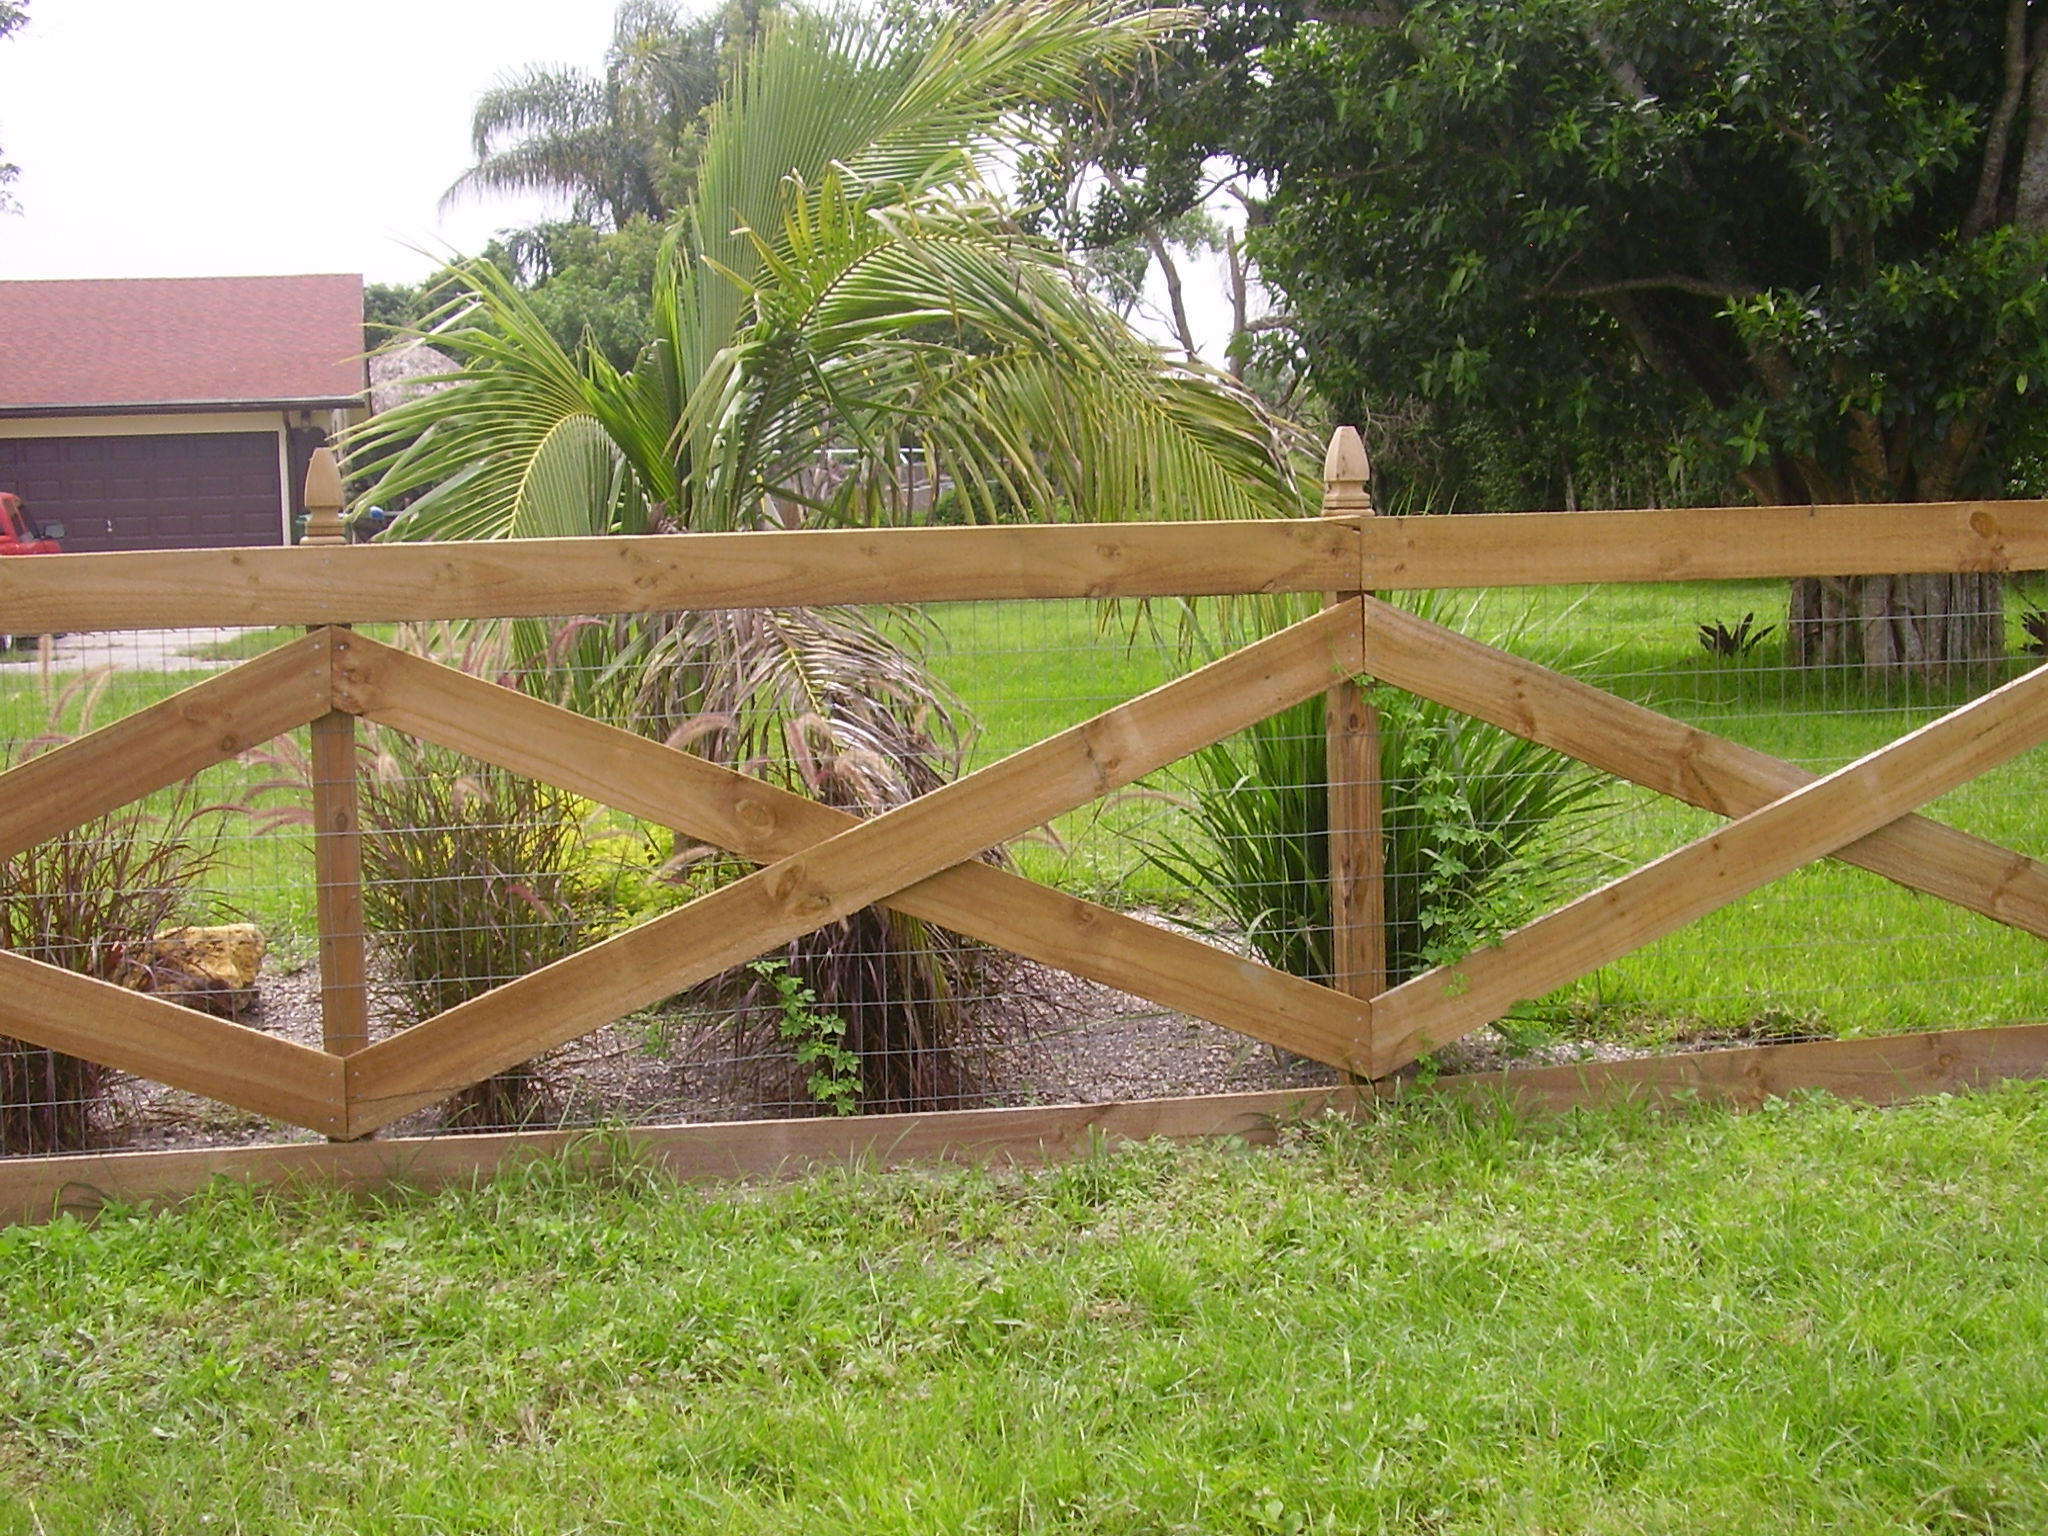 Best ideas about Cheap DIY Fencing For Dogs . Save or Pin Cheap Easy Dog Fence With 3 Popular Dog Fence Options Now.